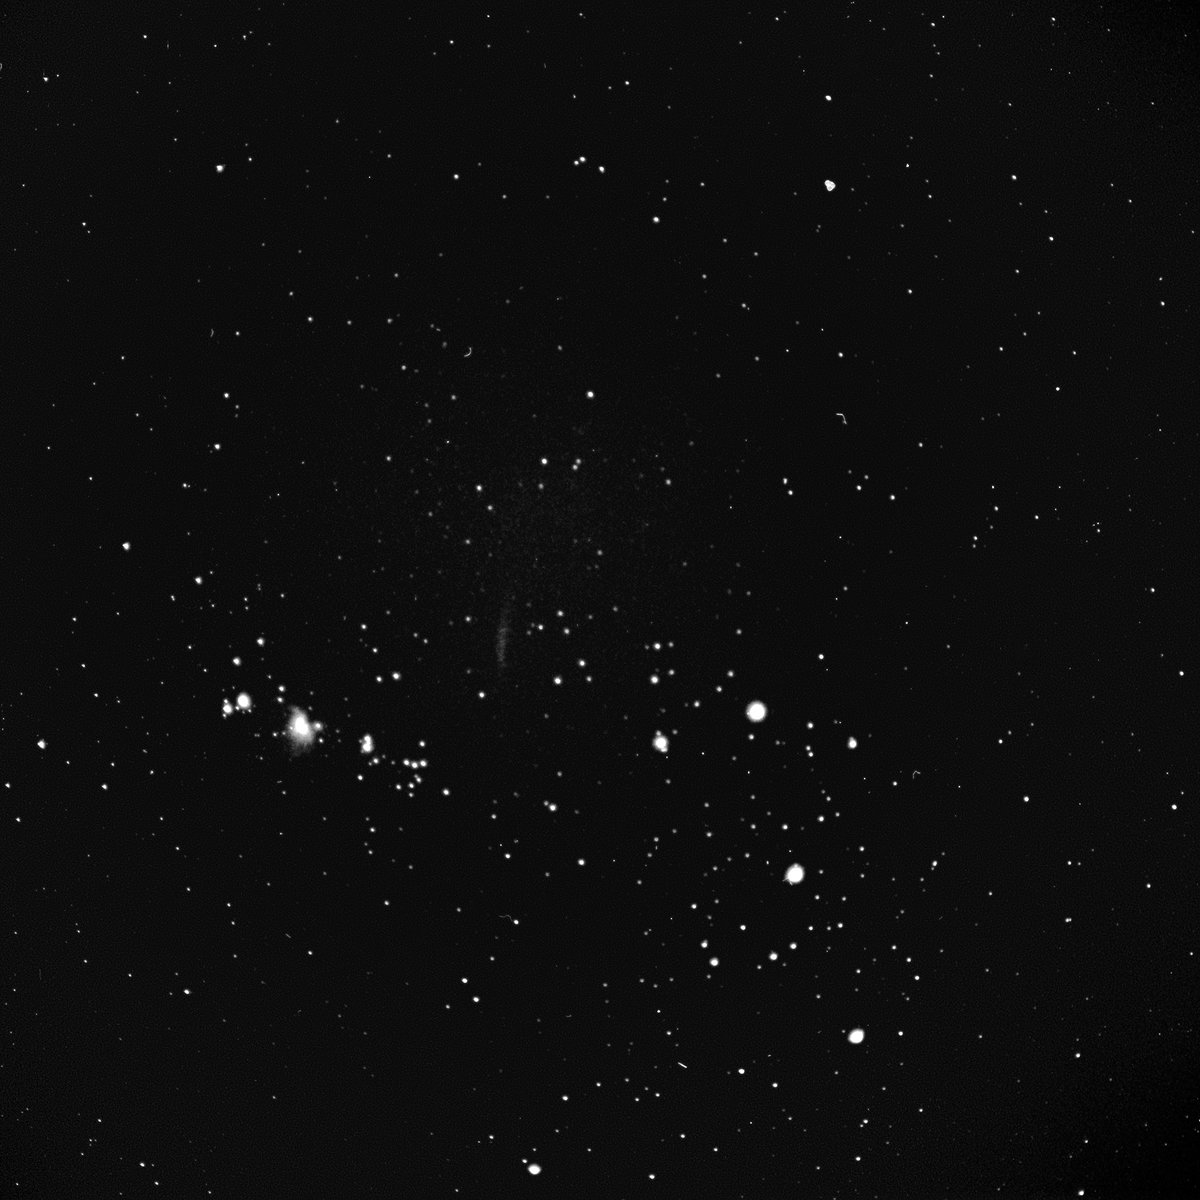 Orion_full.thumb.jpg.769220c532020b70955c569daadf026b.jpg